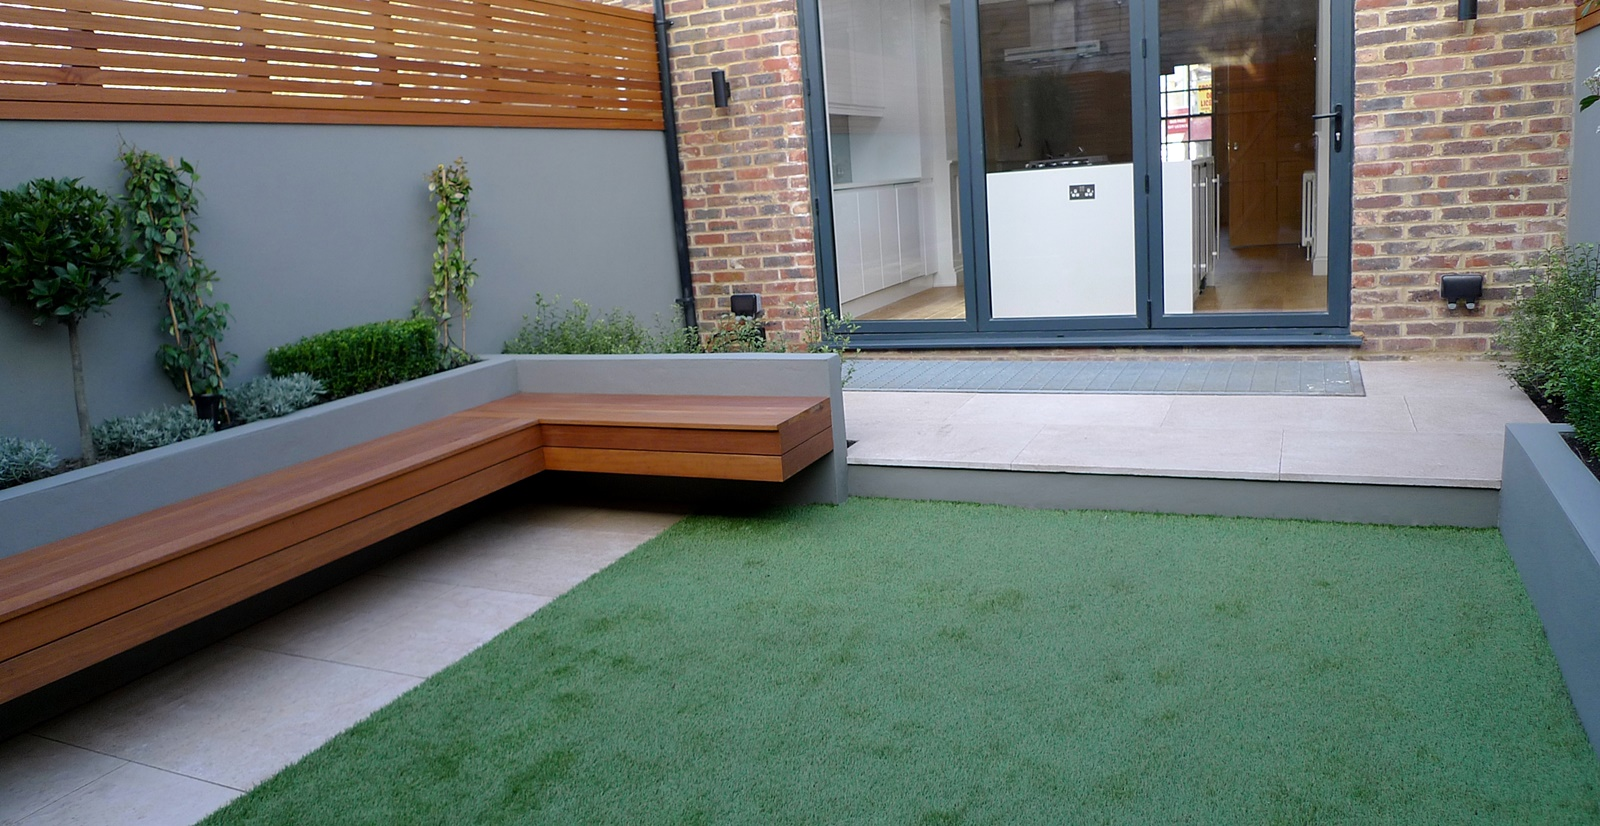 Modern garden designer london artificial grass hardwood for Contemporary garden trellis designs